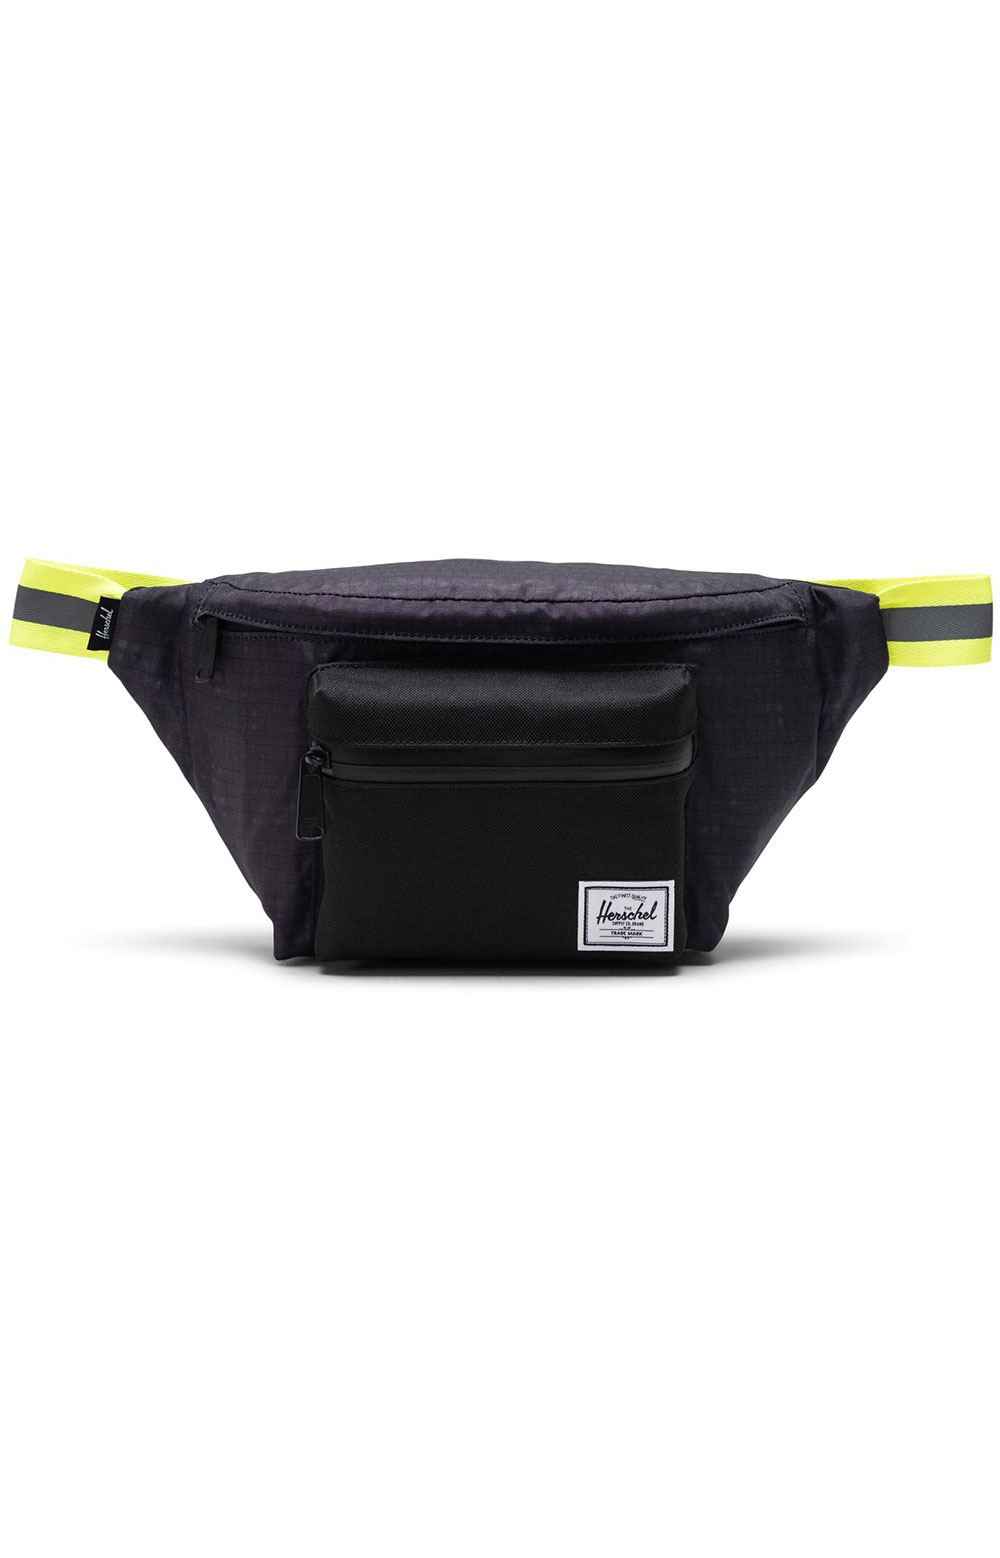 Seventeen Hip Pack - Black Enzyme Ripstop/Black/Safety Yellow